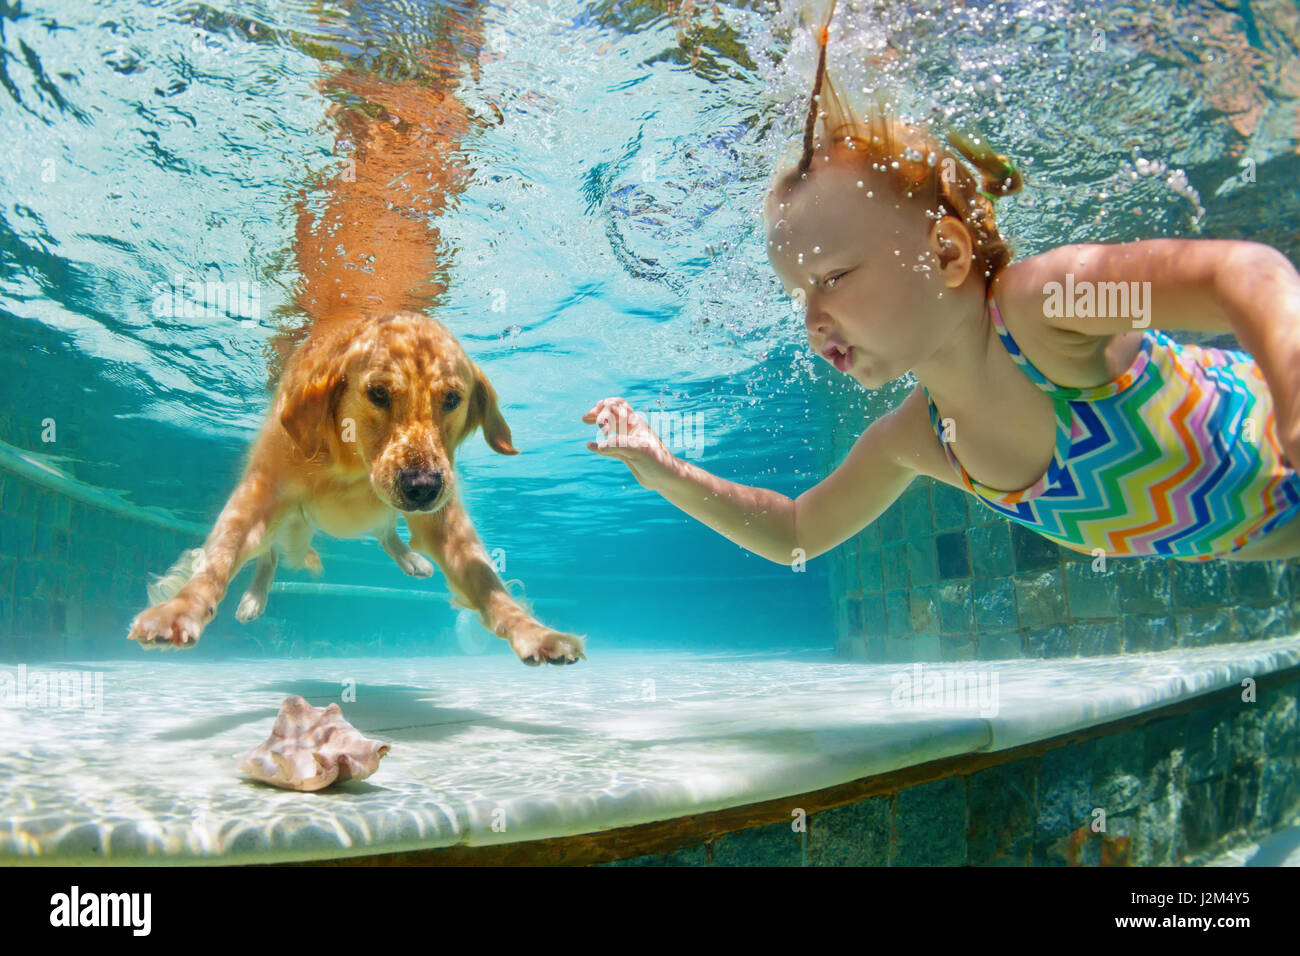 Underwater action. Smiley child play with fun, training golden retriever puppy in swimming pool - jump and dive. - Stock Image